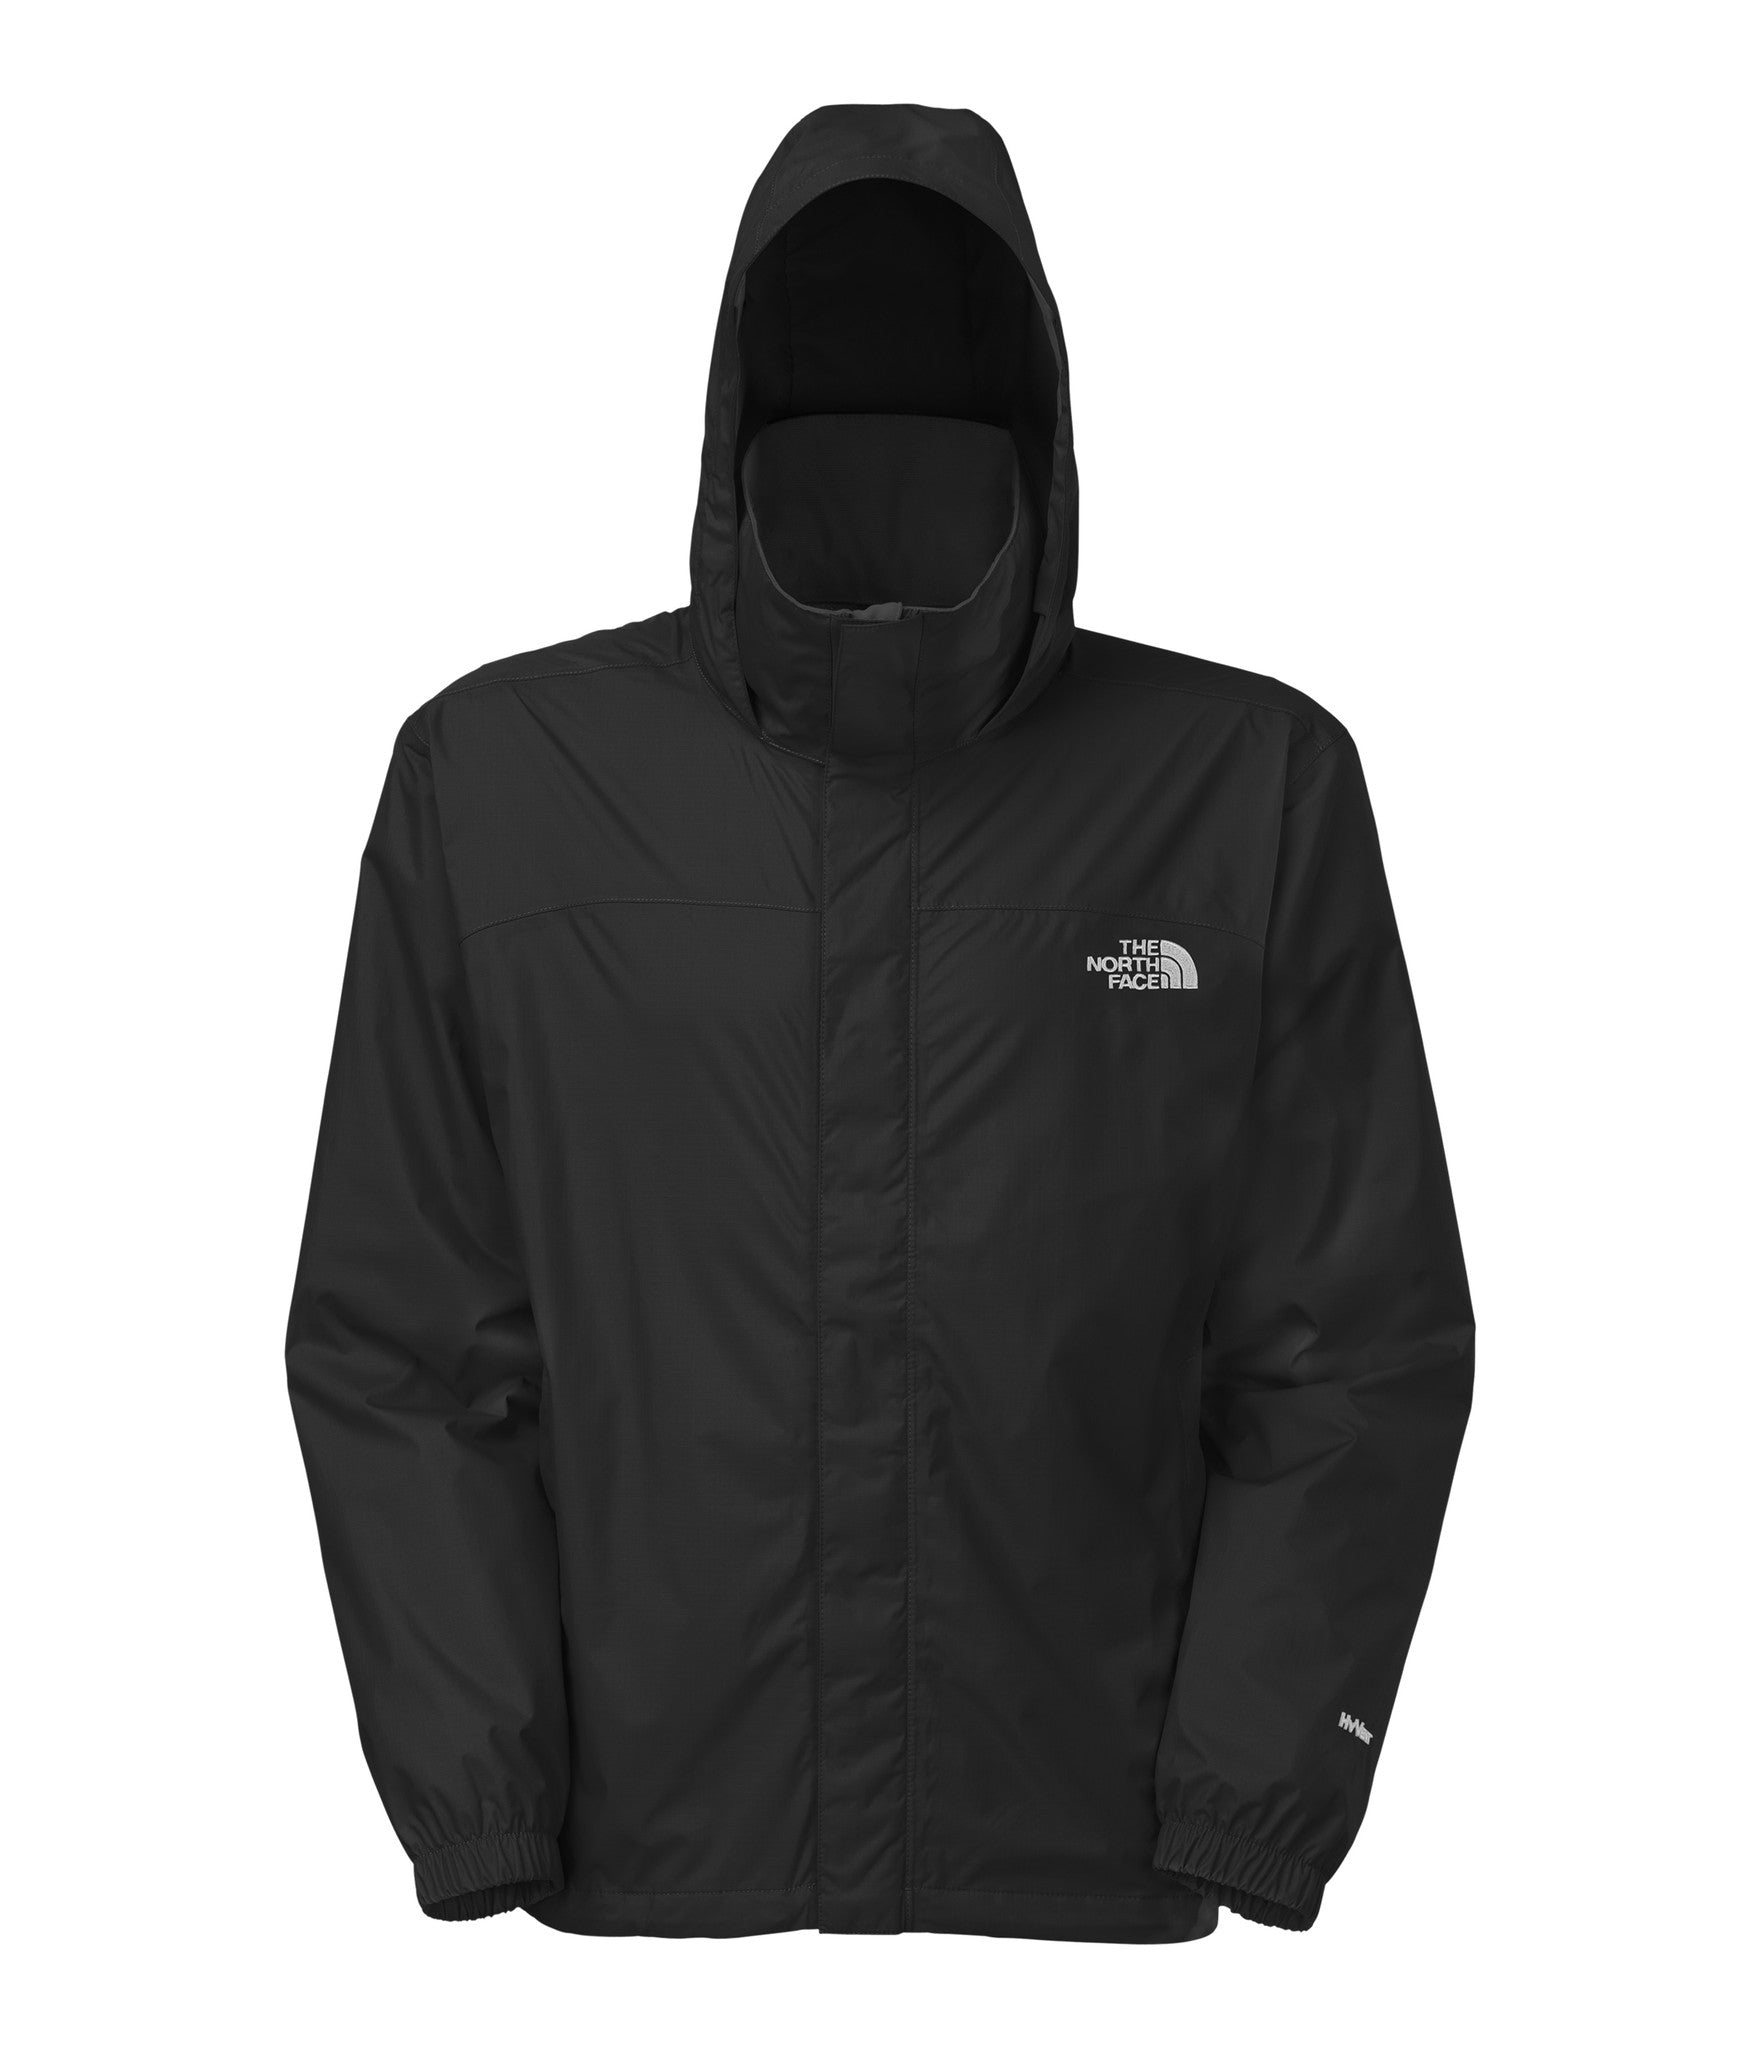 4be1e14b58ce The North Face Men s Resolve Jacket in TNF Black – Welcome to  Footprint27.com